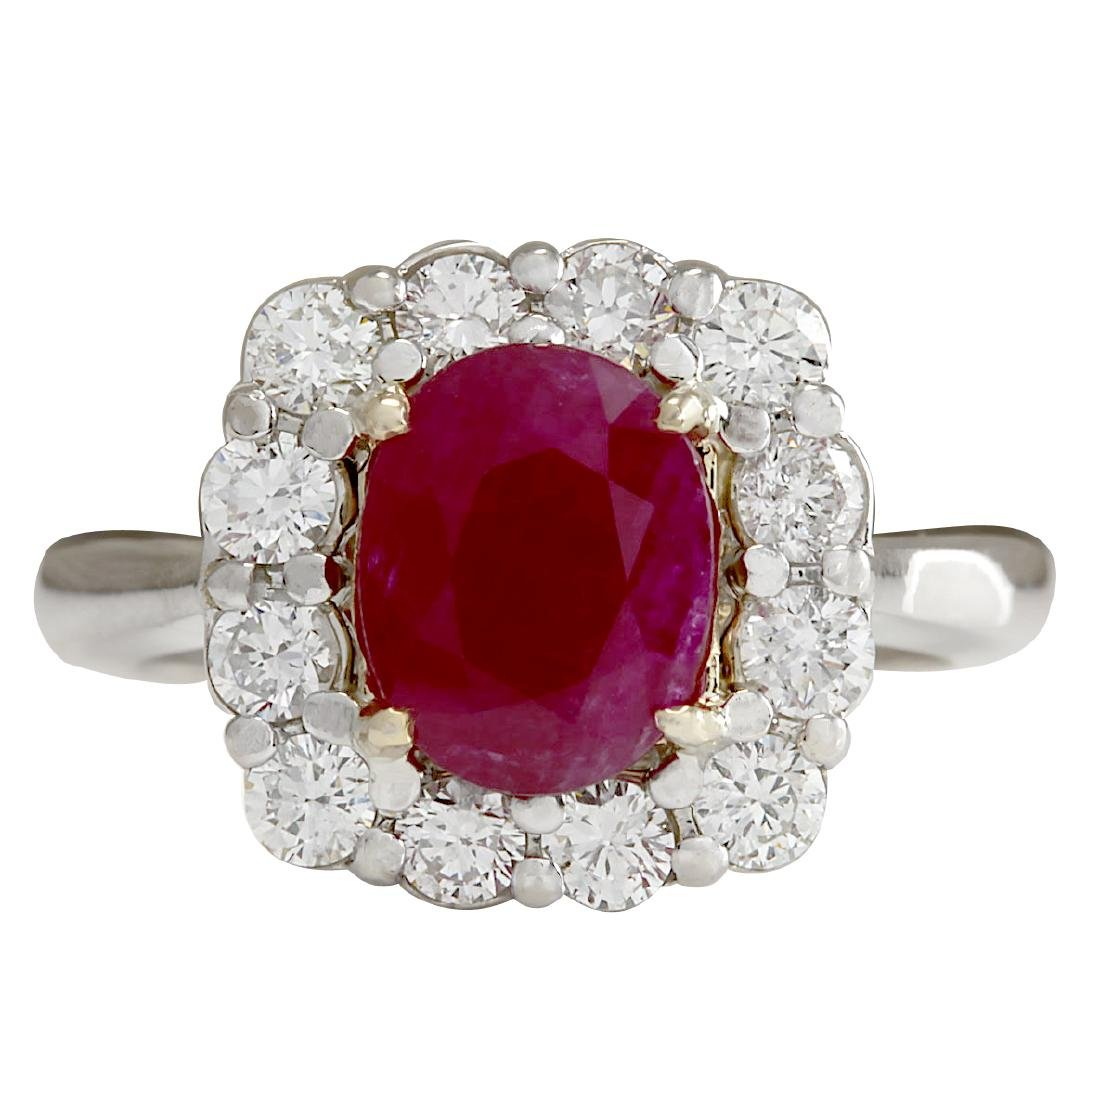 3.47CTW Natural Ruby And Diamond Ring 18K Solid White